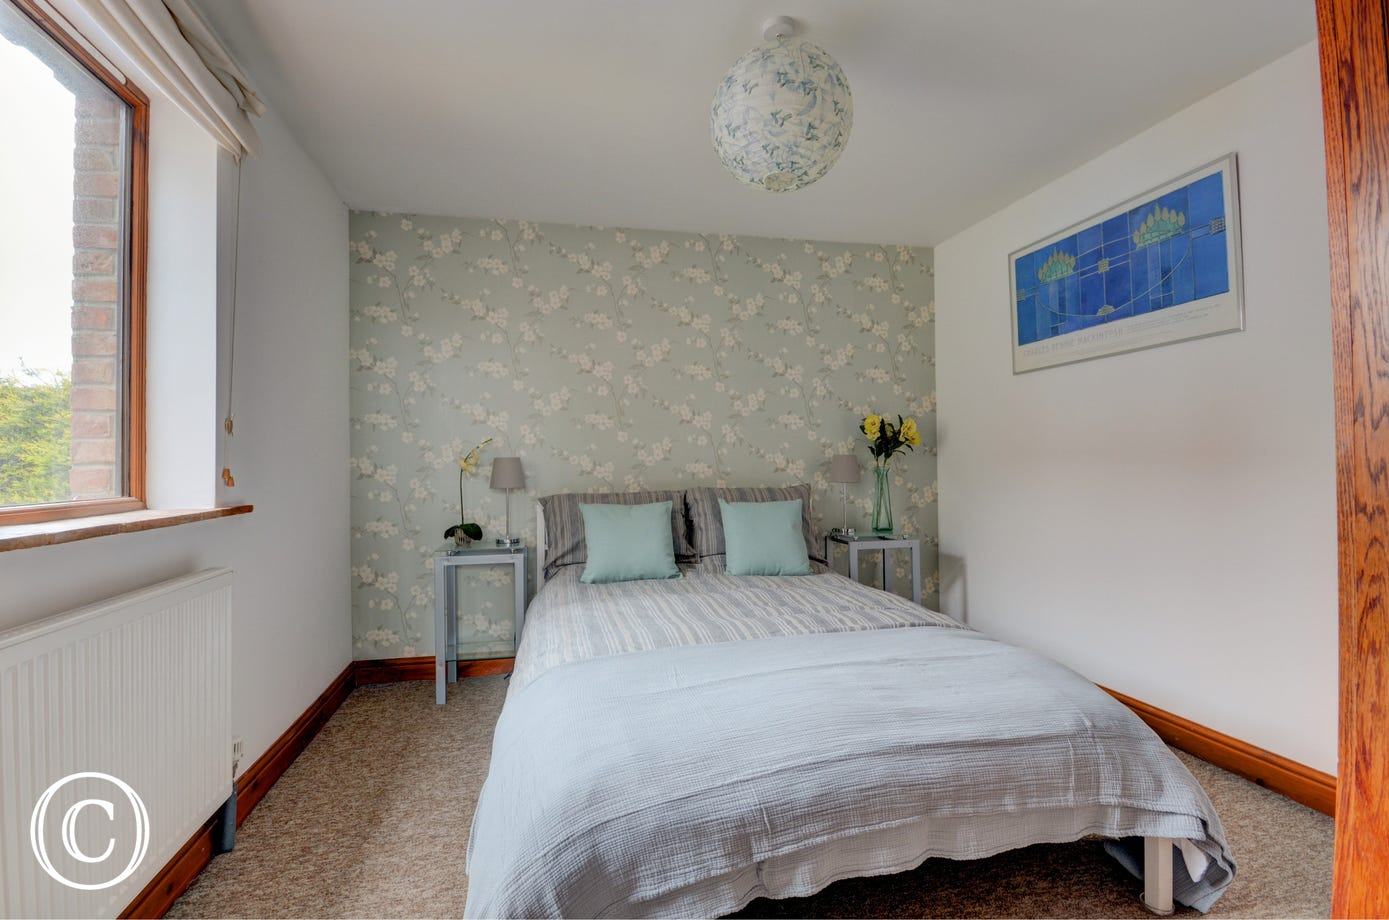 Contemporary furniture and furnishings in this bright double bedded second bedroom.